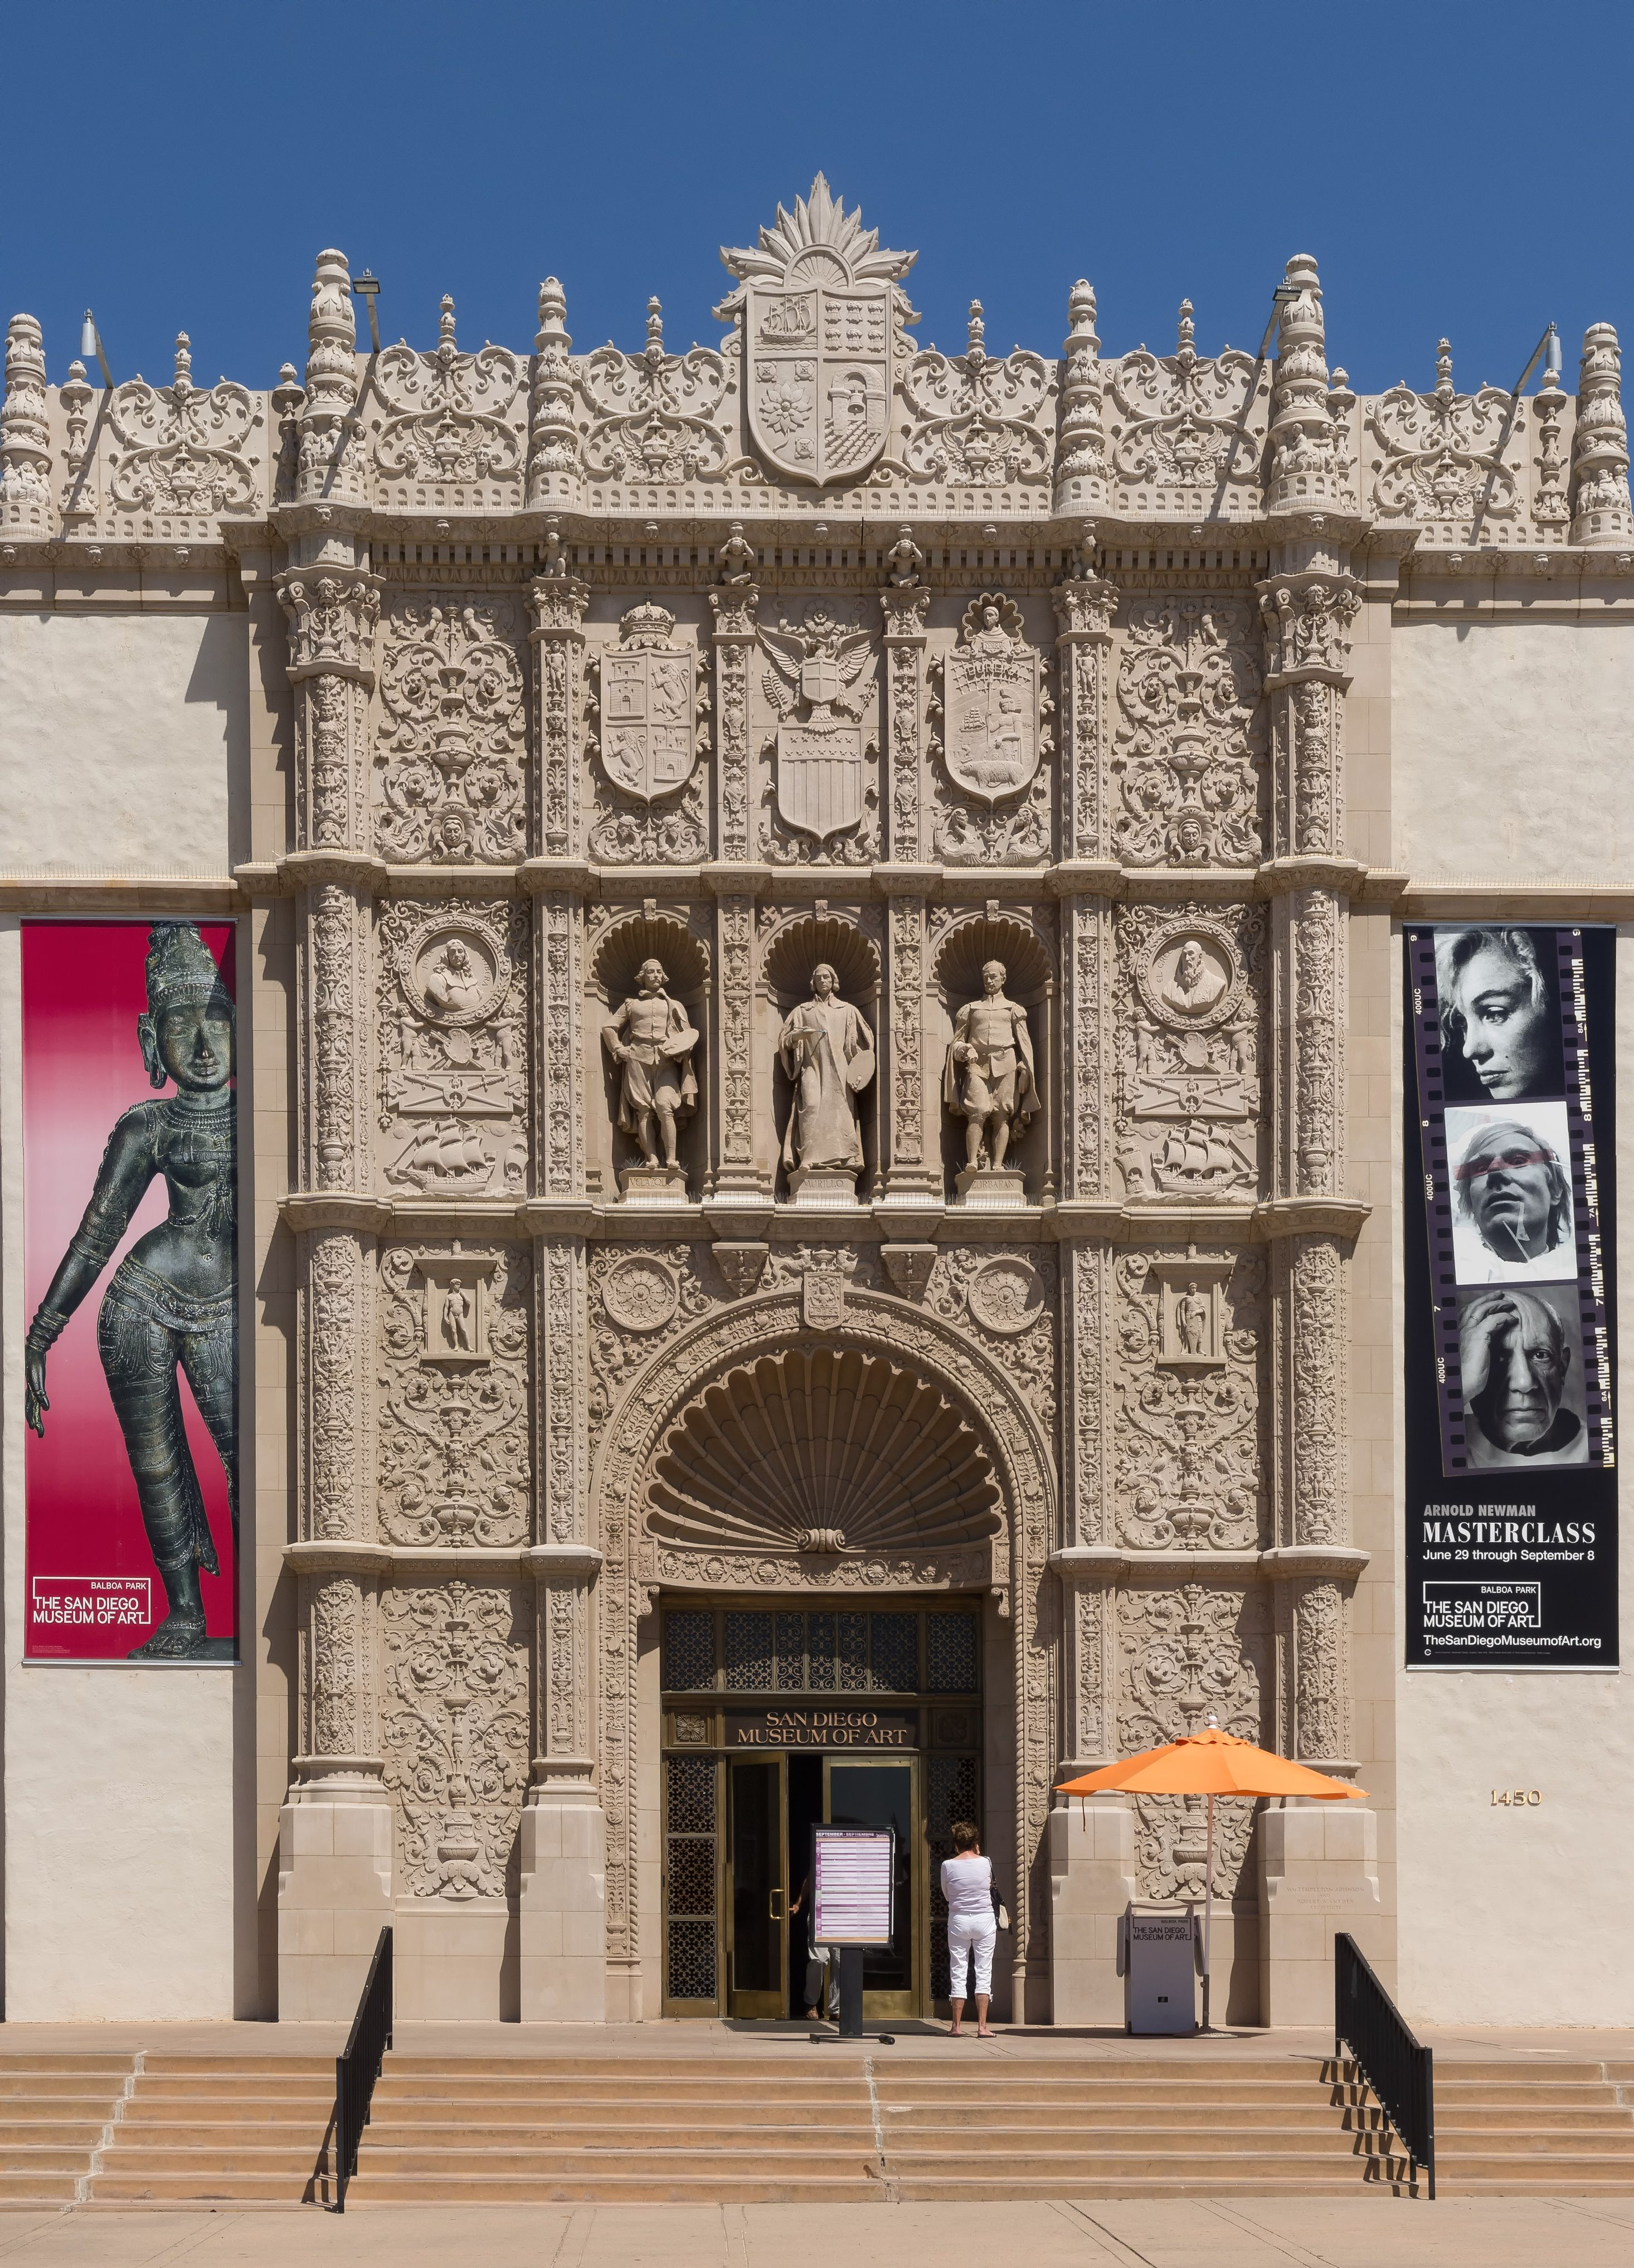 Best museums and art galleries in san diego for your